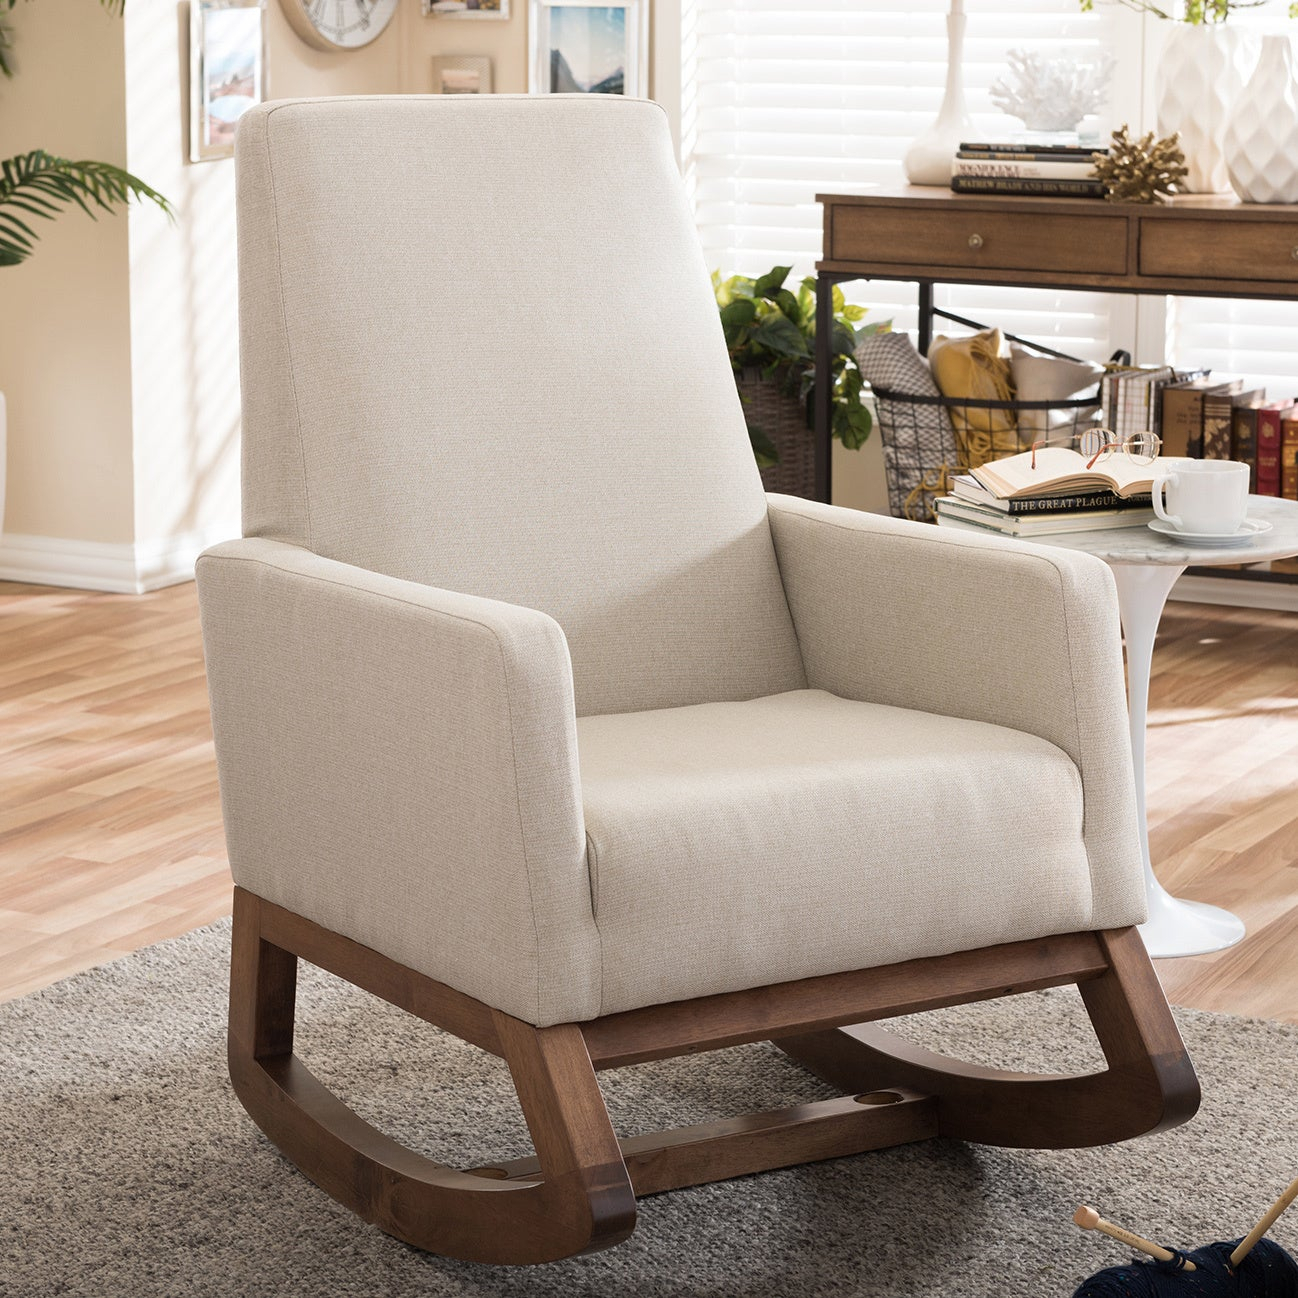 Carson Carrington Honningsvag Mid Century Modern Light Beige Upholstered  Rocking Chair With Regard To Padded Rocking Chairs (#4 of 20)